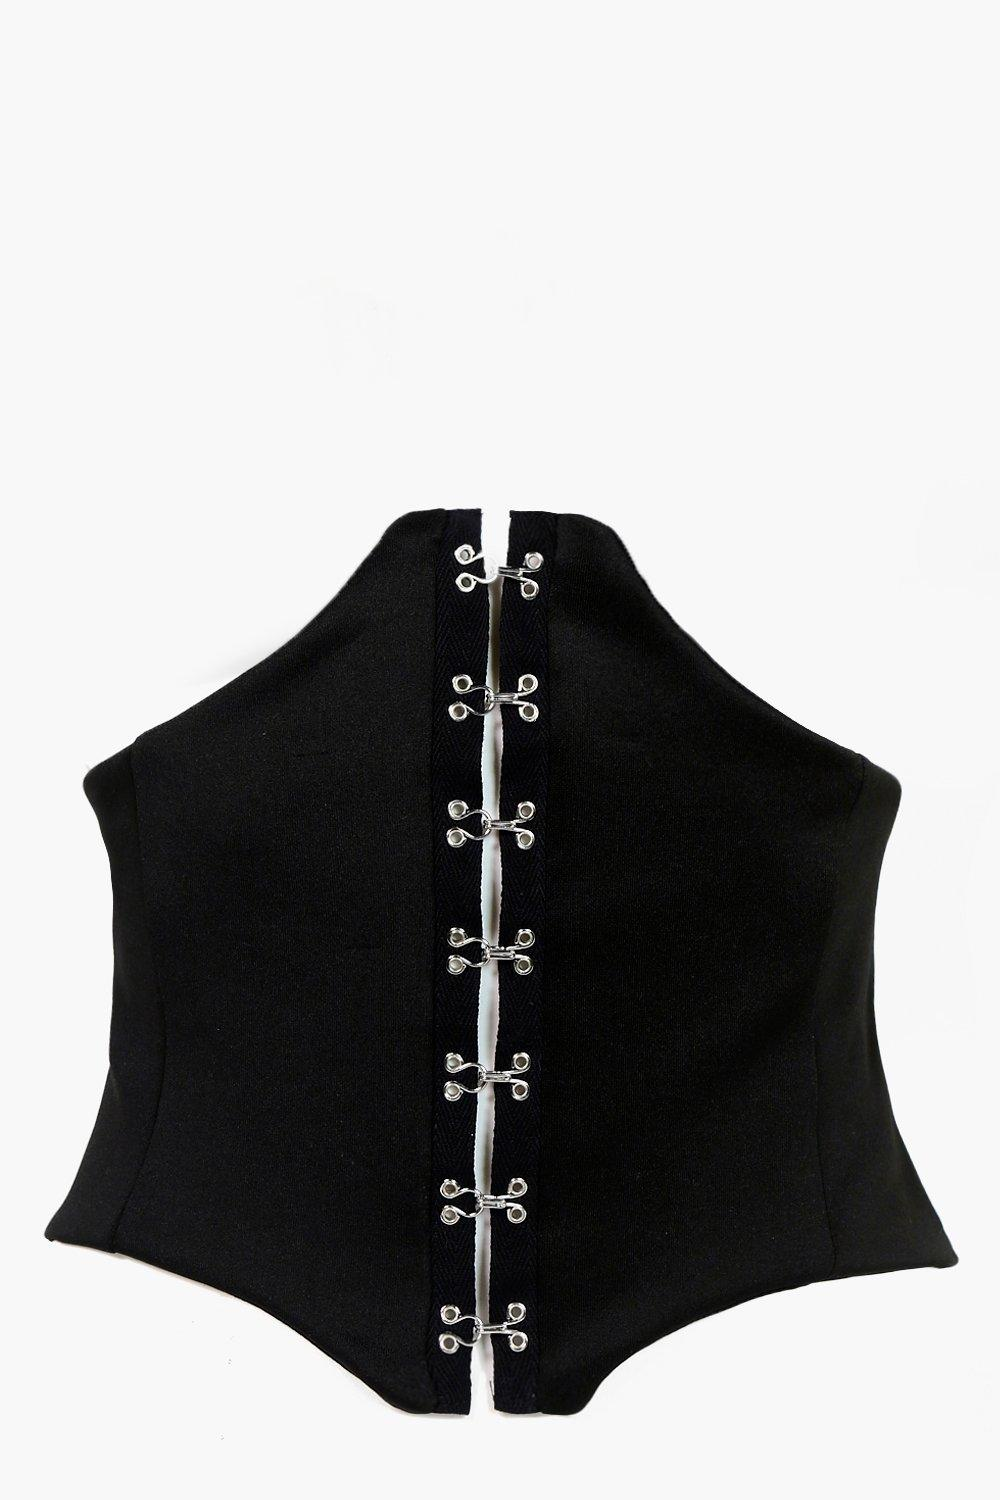 Hook & Eye Corset - black - Sofia Hook & Eye Corse